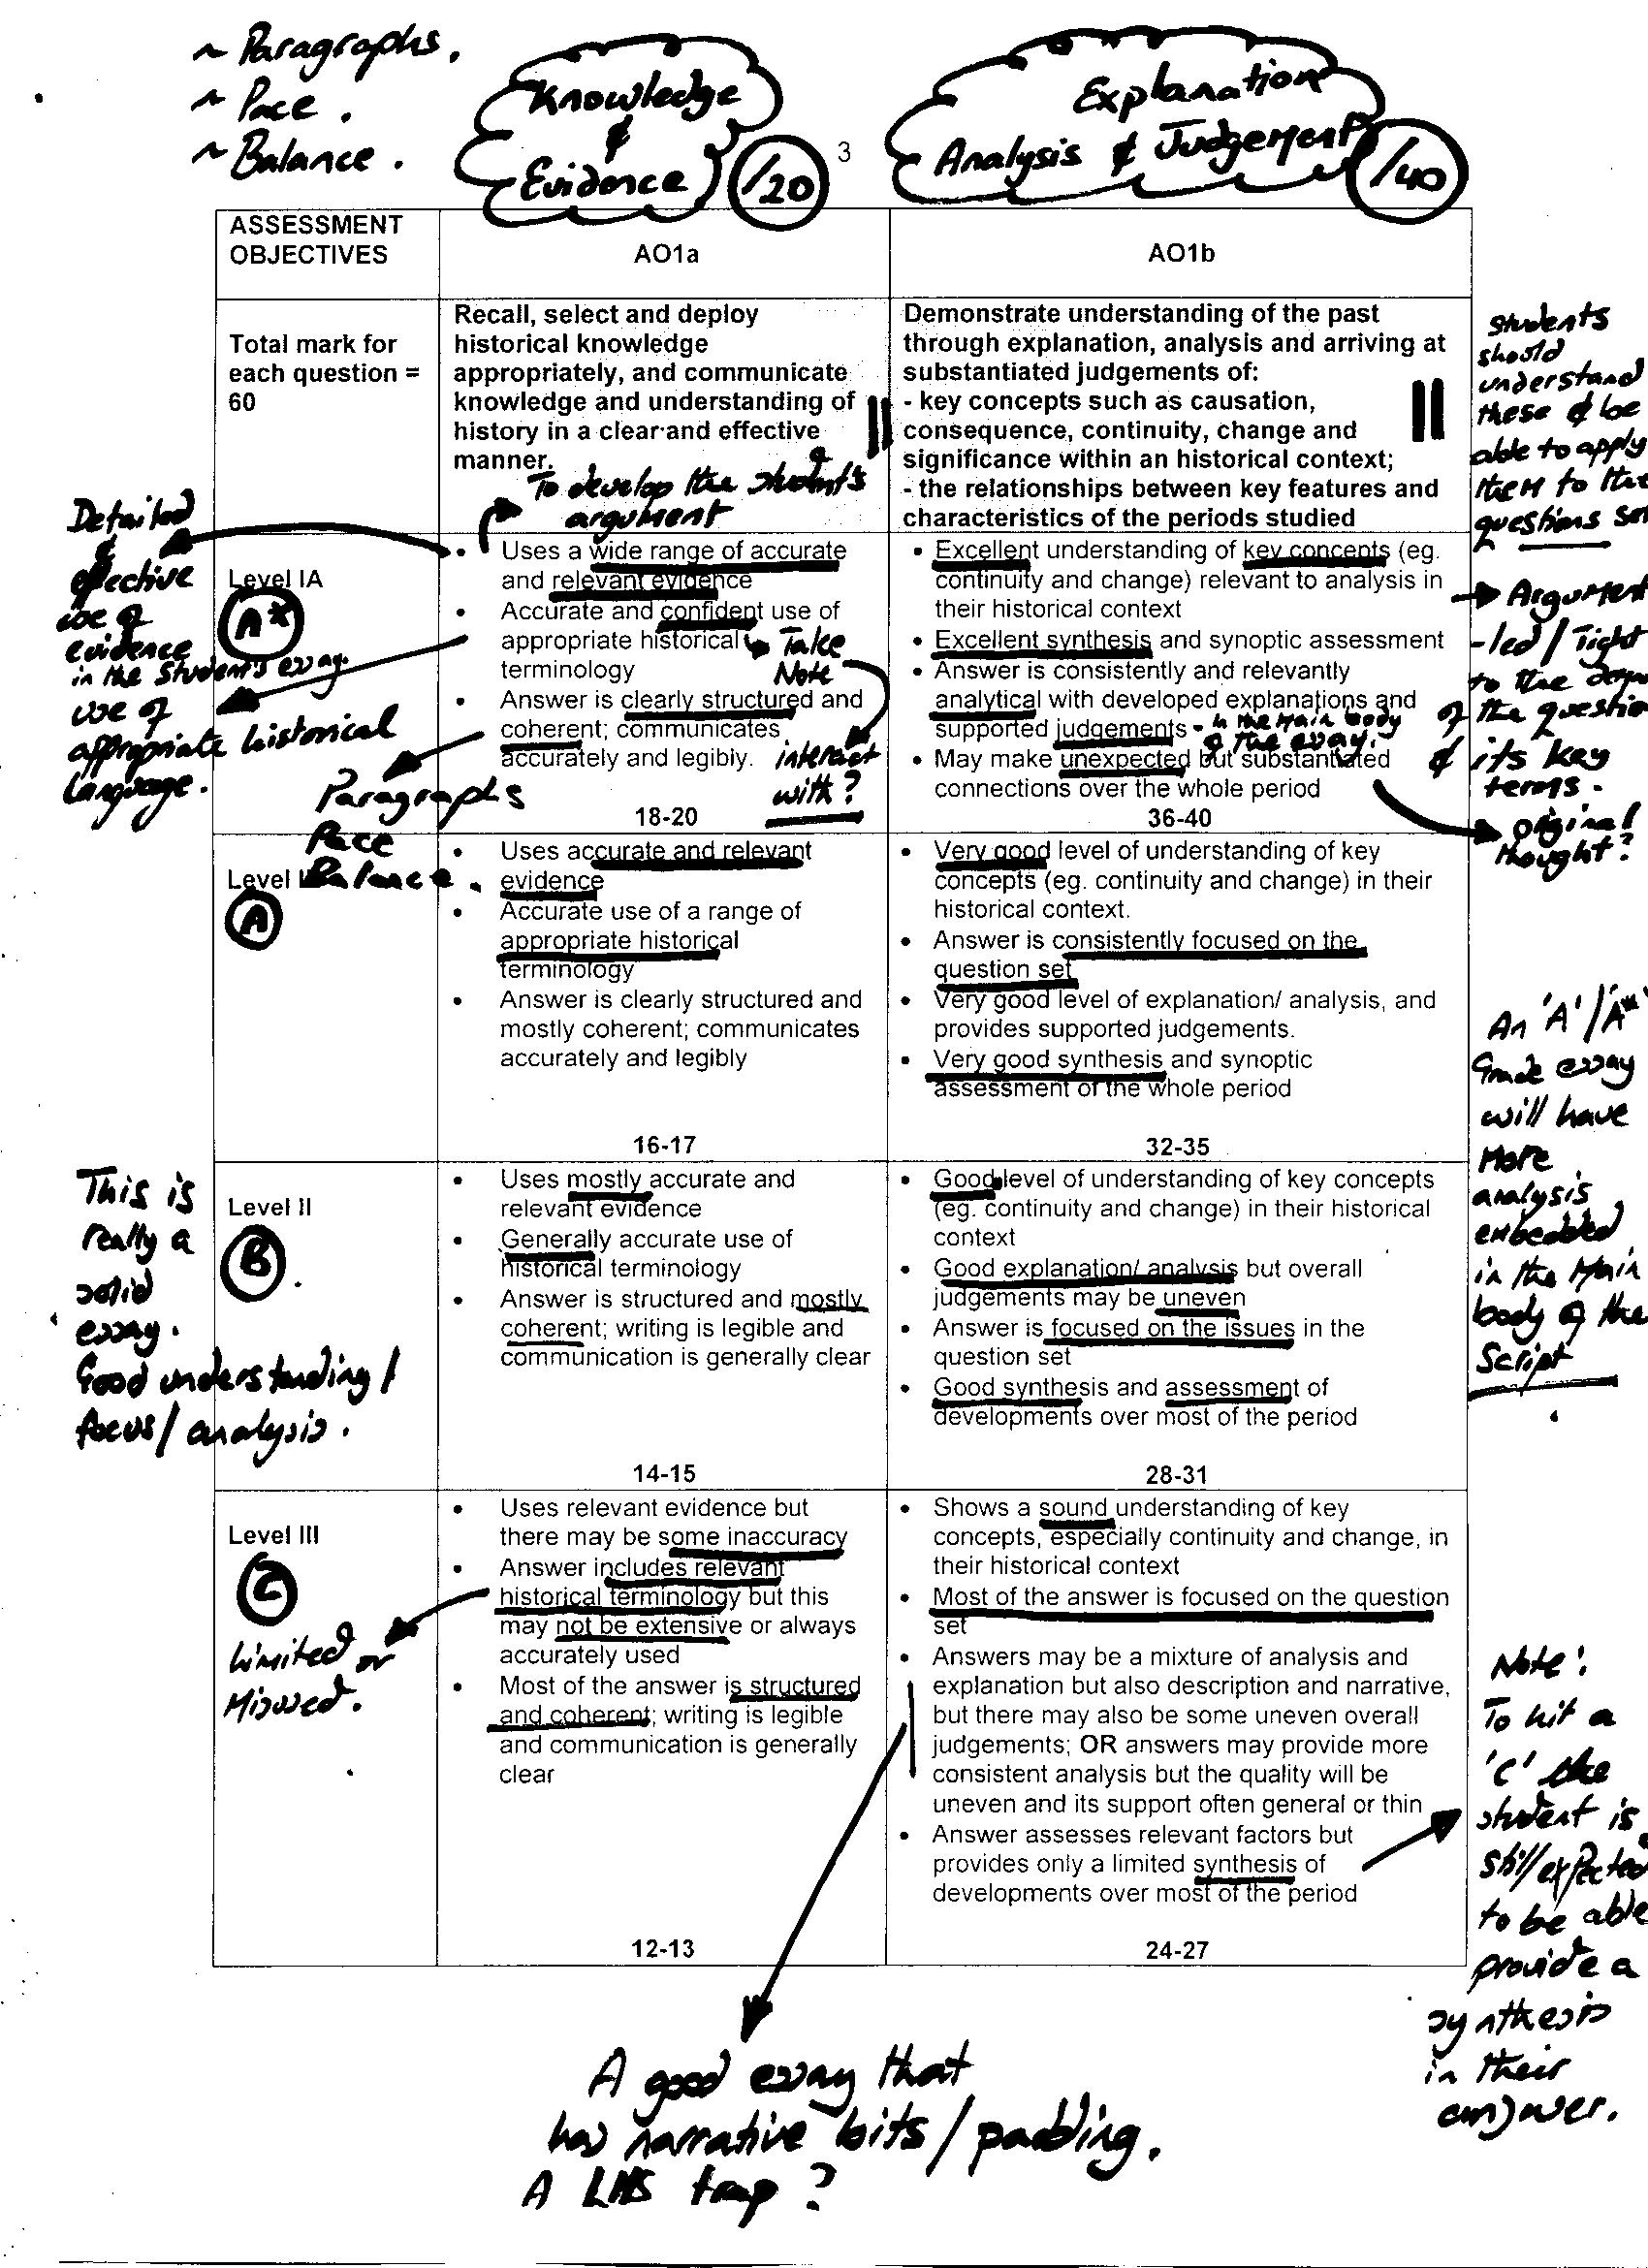 annotated mark scheme heathen history russia annotated mark scheme